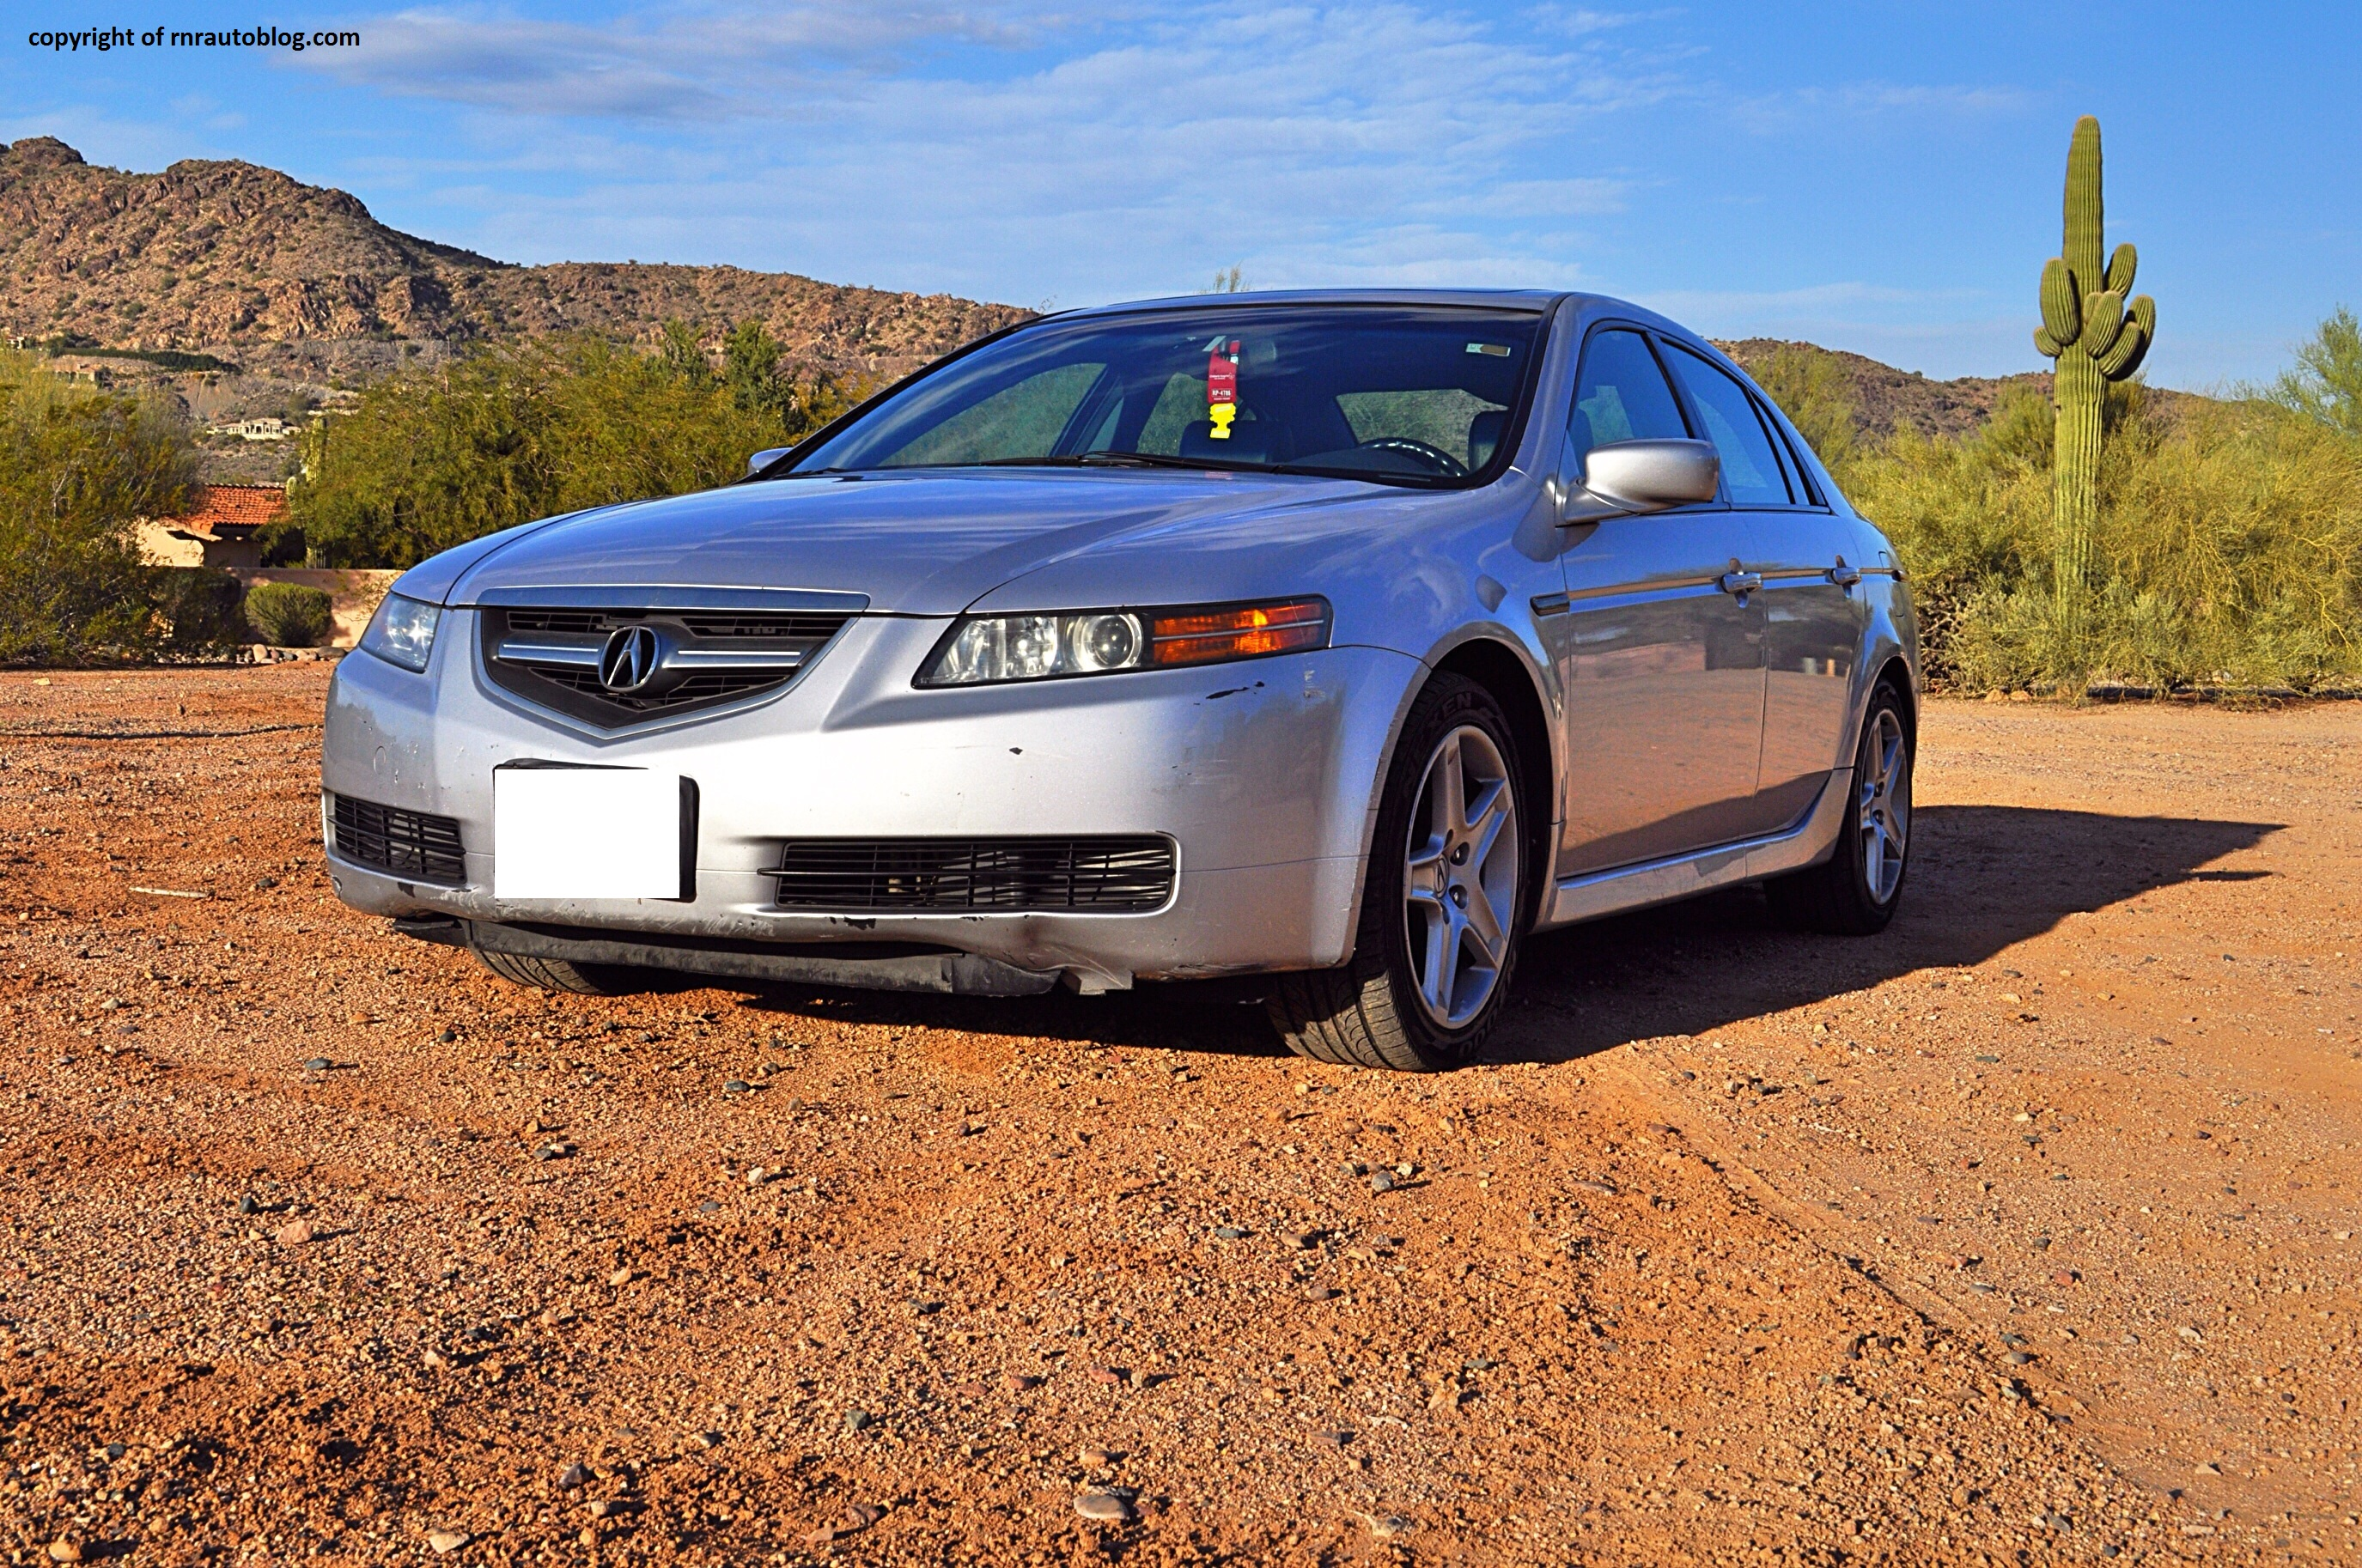 2013 acura tl manual transmission review